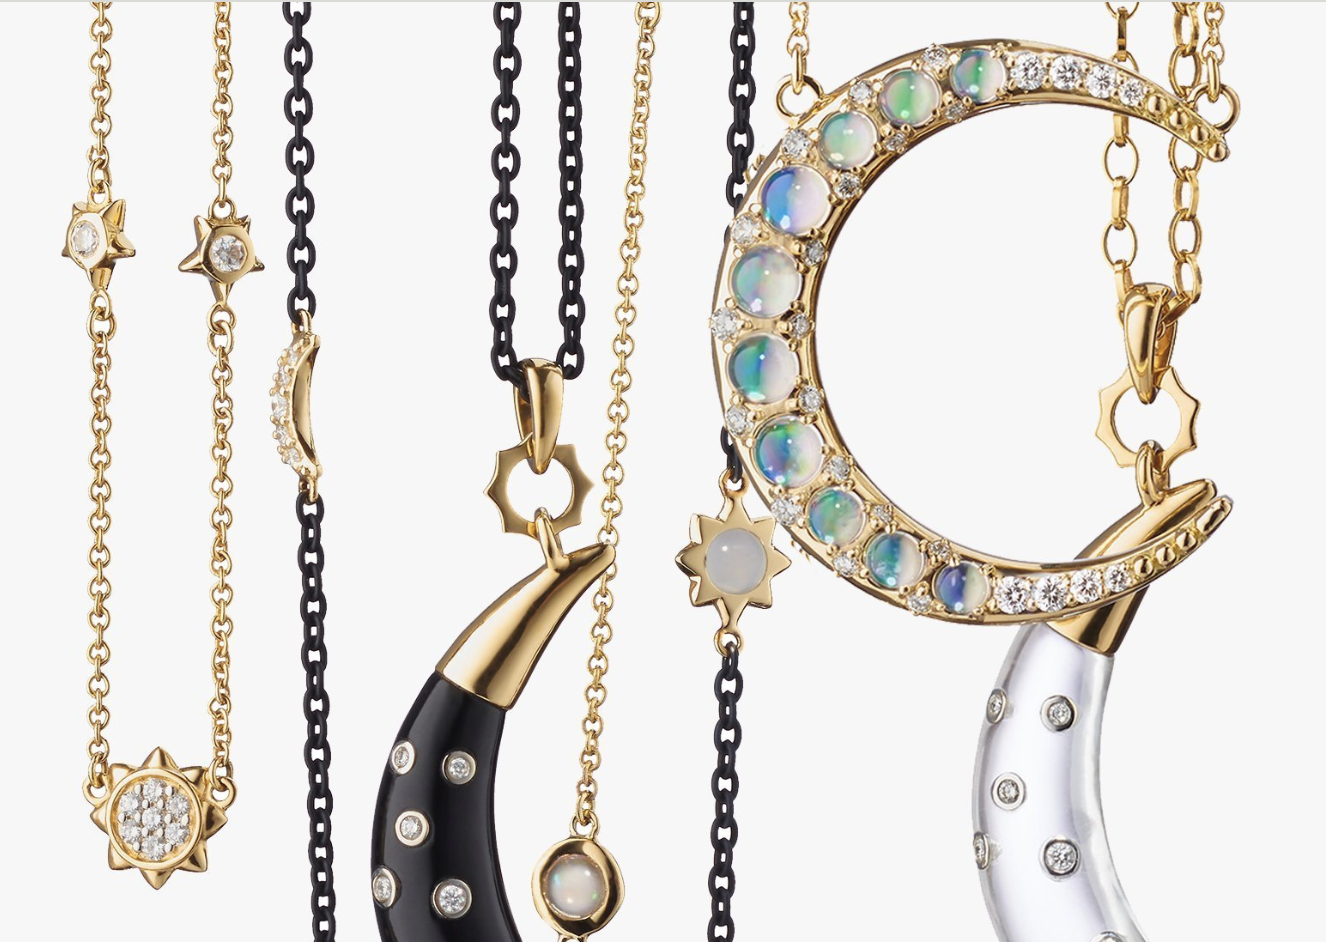 From Fireworks to Talismans, These Are the Hottest New Trends in Jewelry